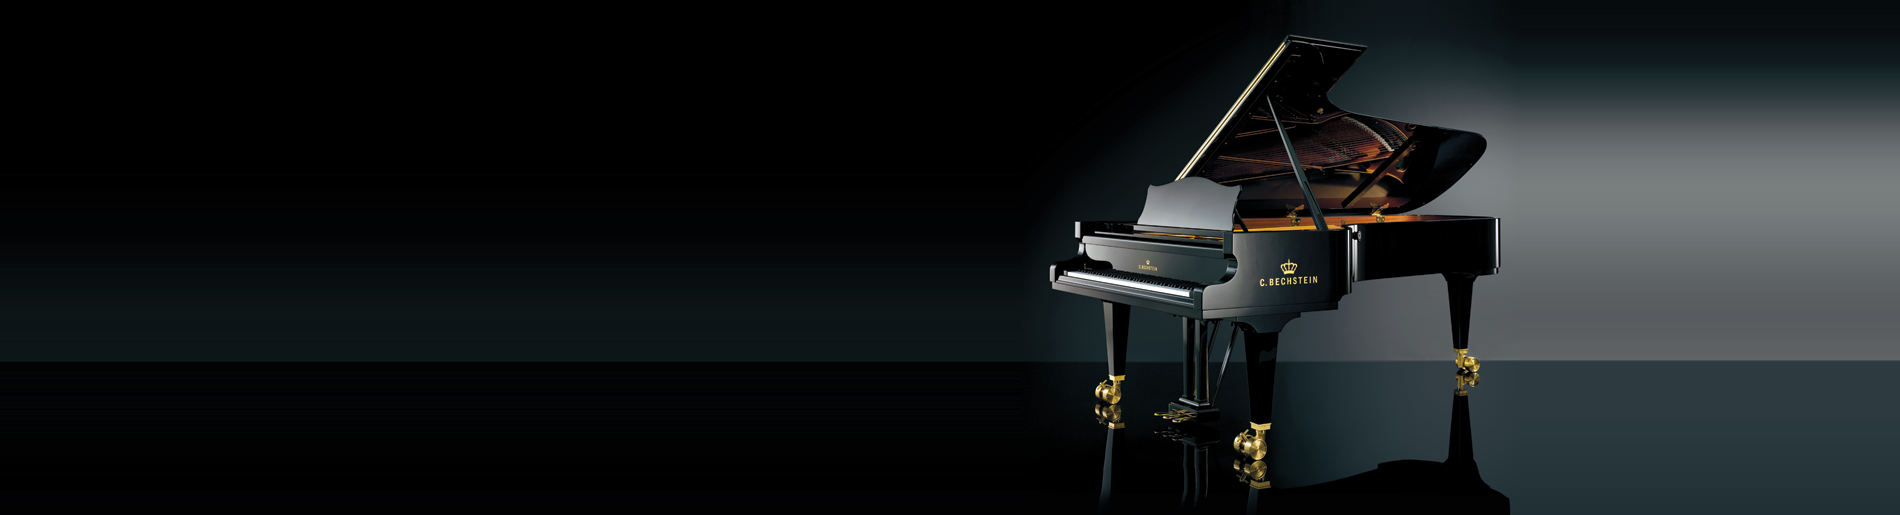 Bechstein grand piano